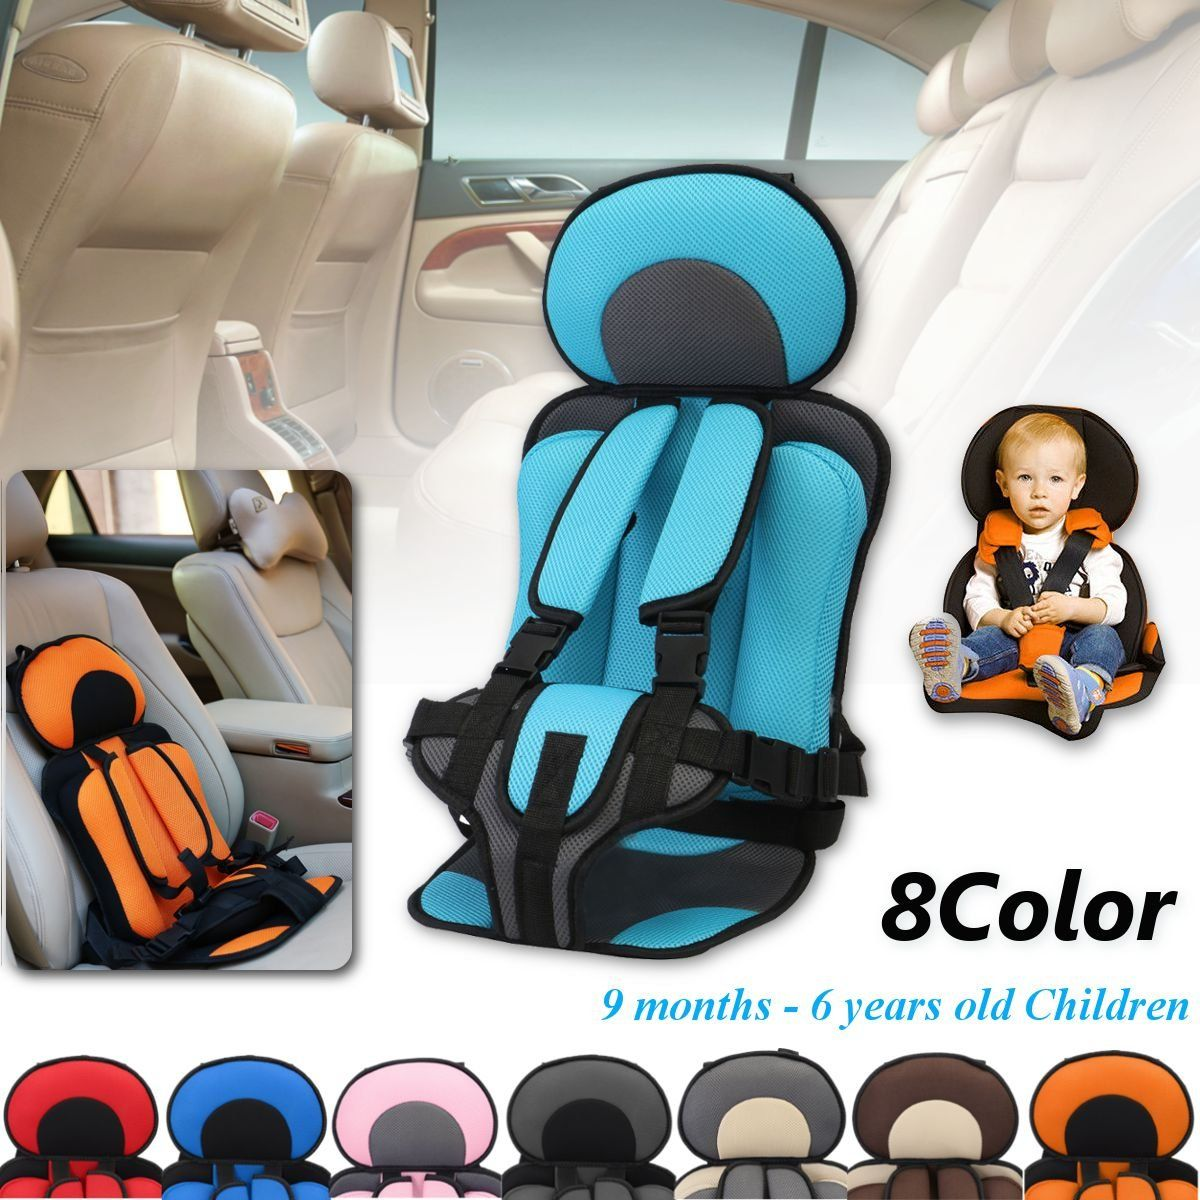 Pink Baby Convertible Car Seat Safety Chair Infant Kid Travel Booster Cup Holder